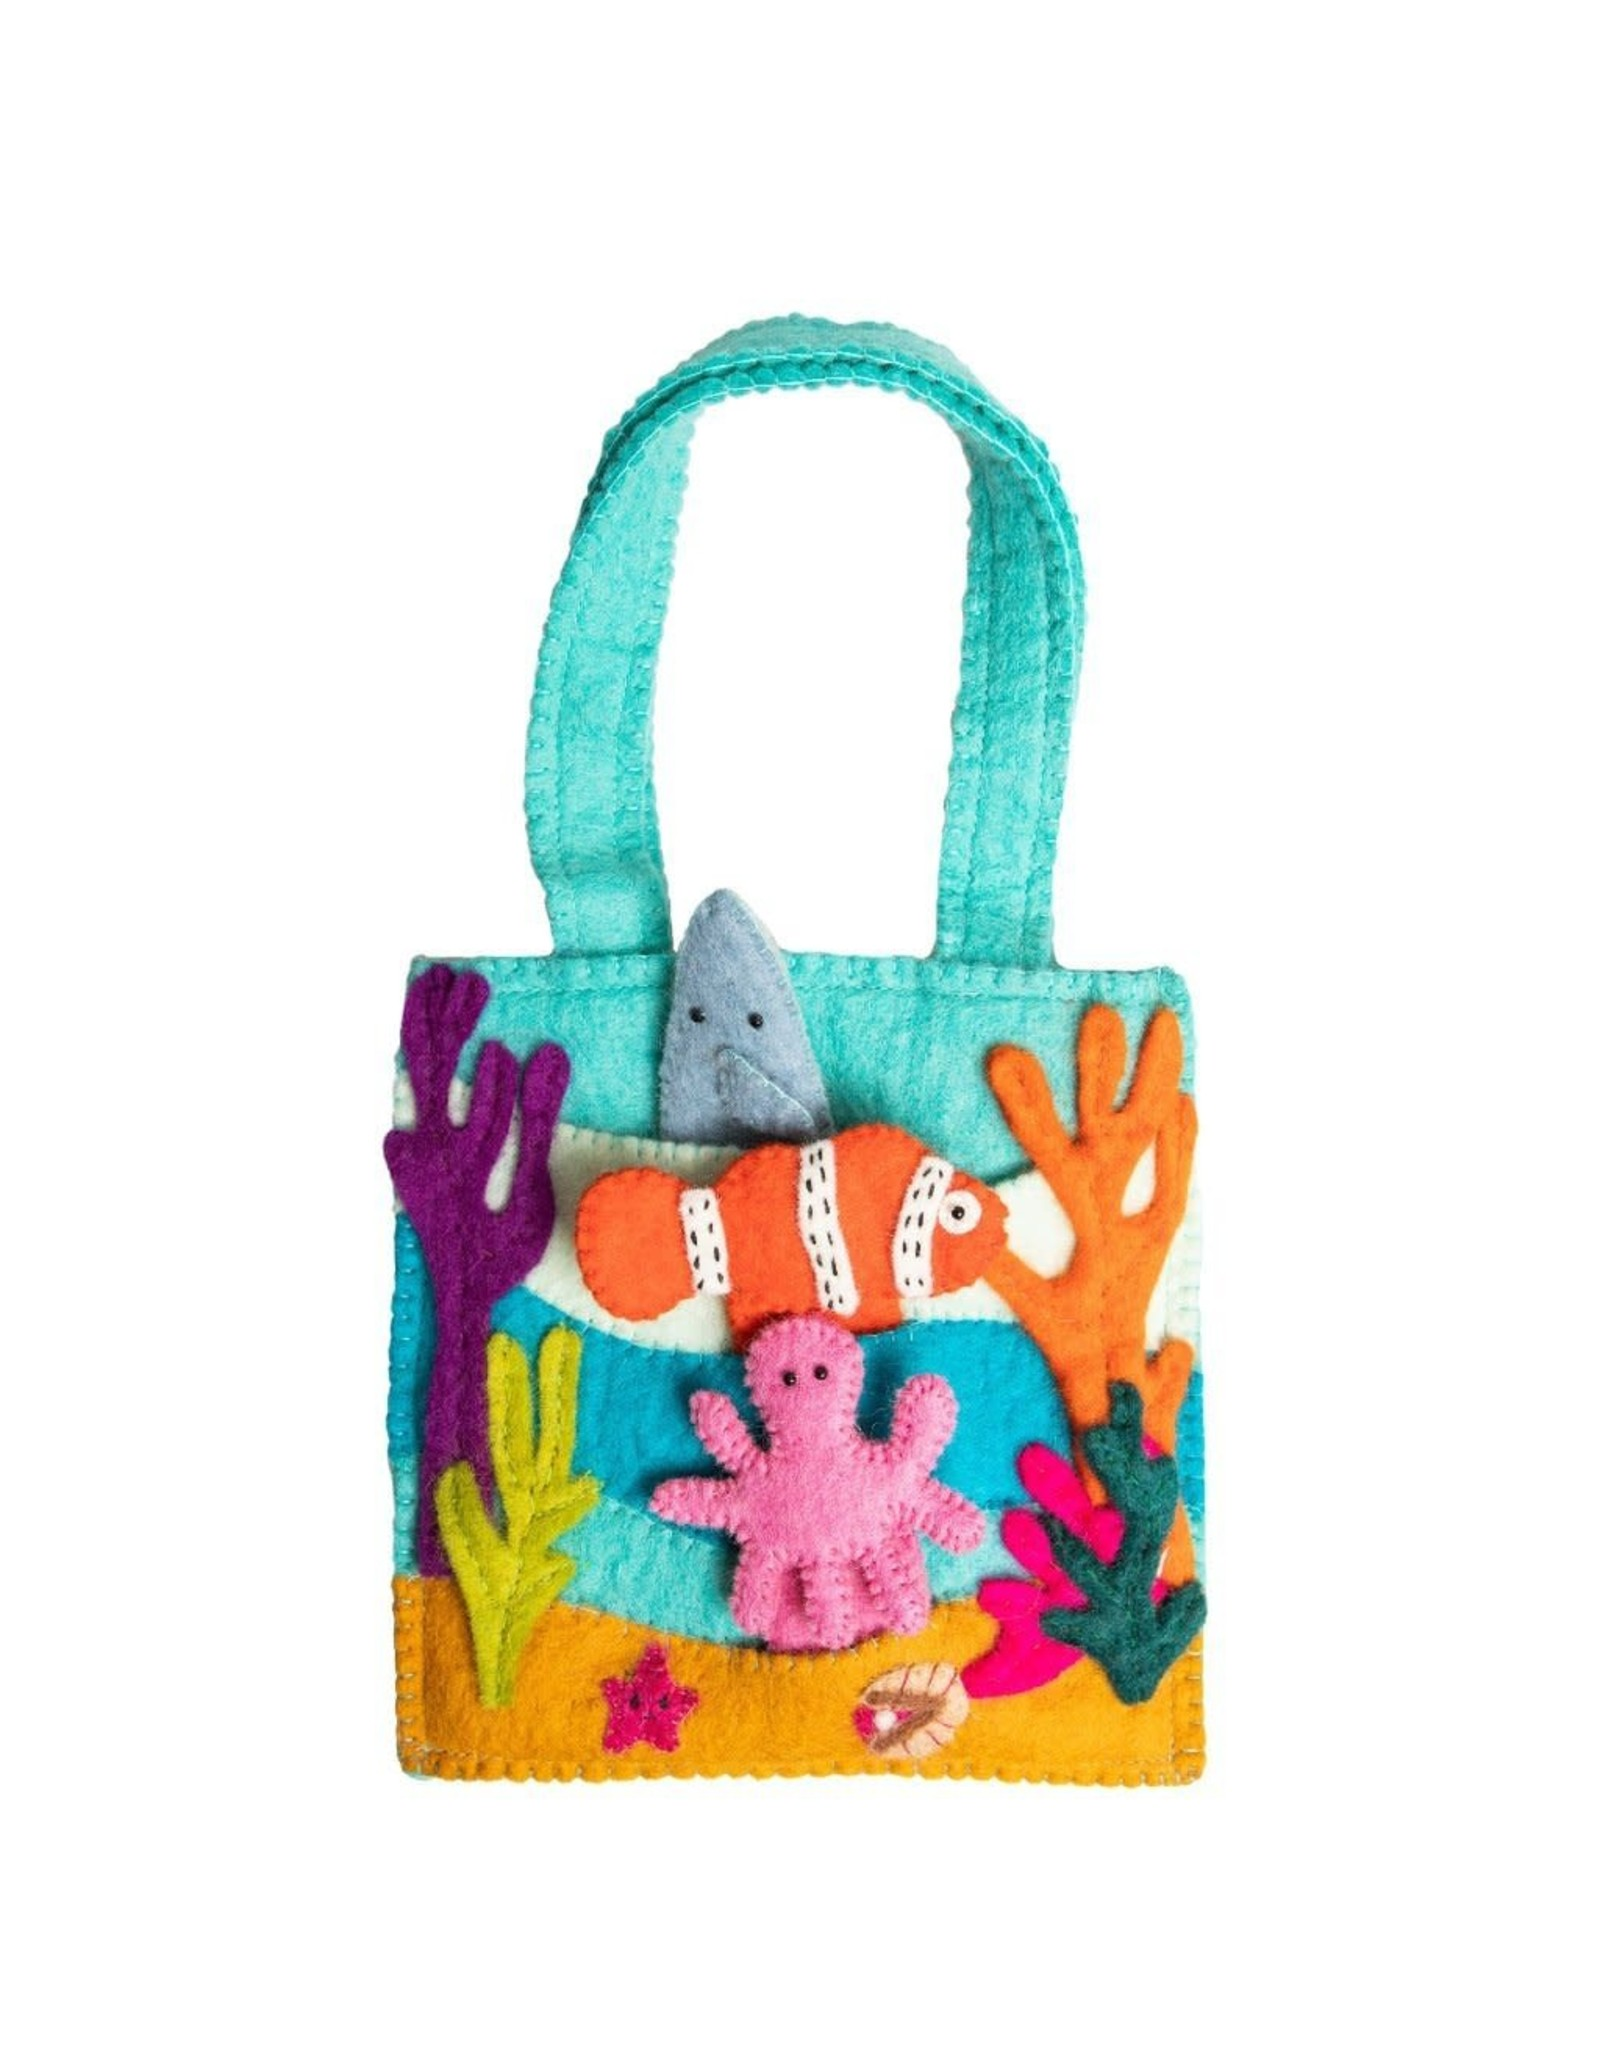 Felt Under the Sea Puppet Bag , Nepal